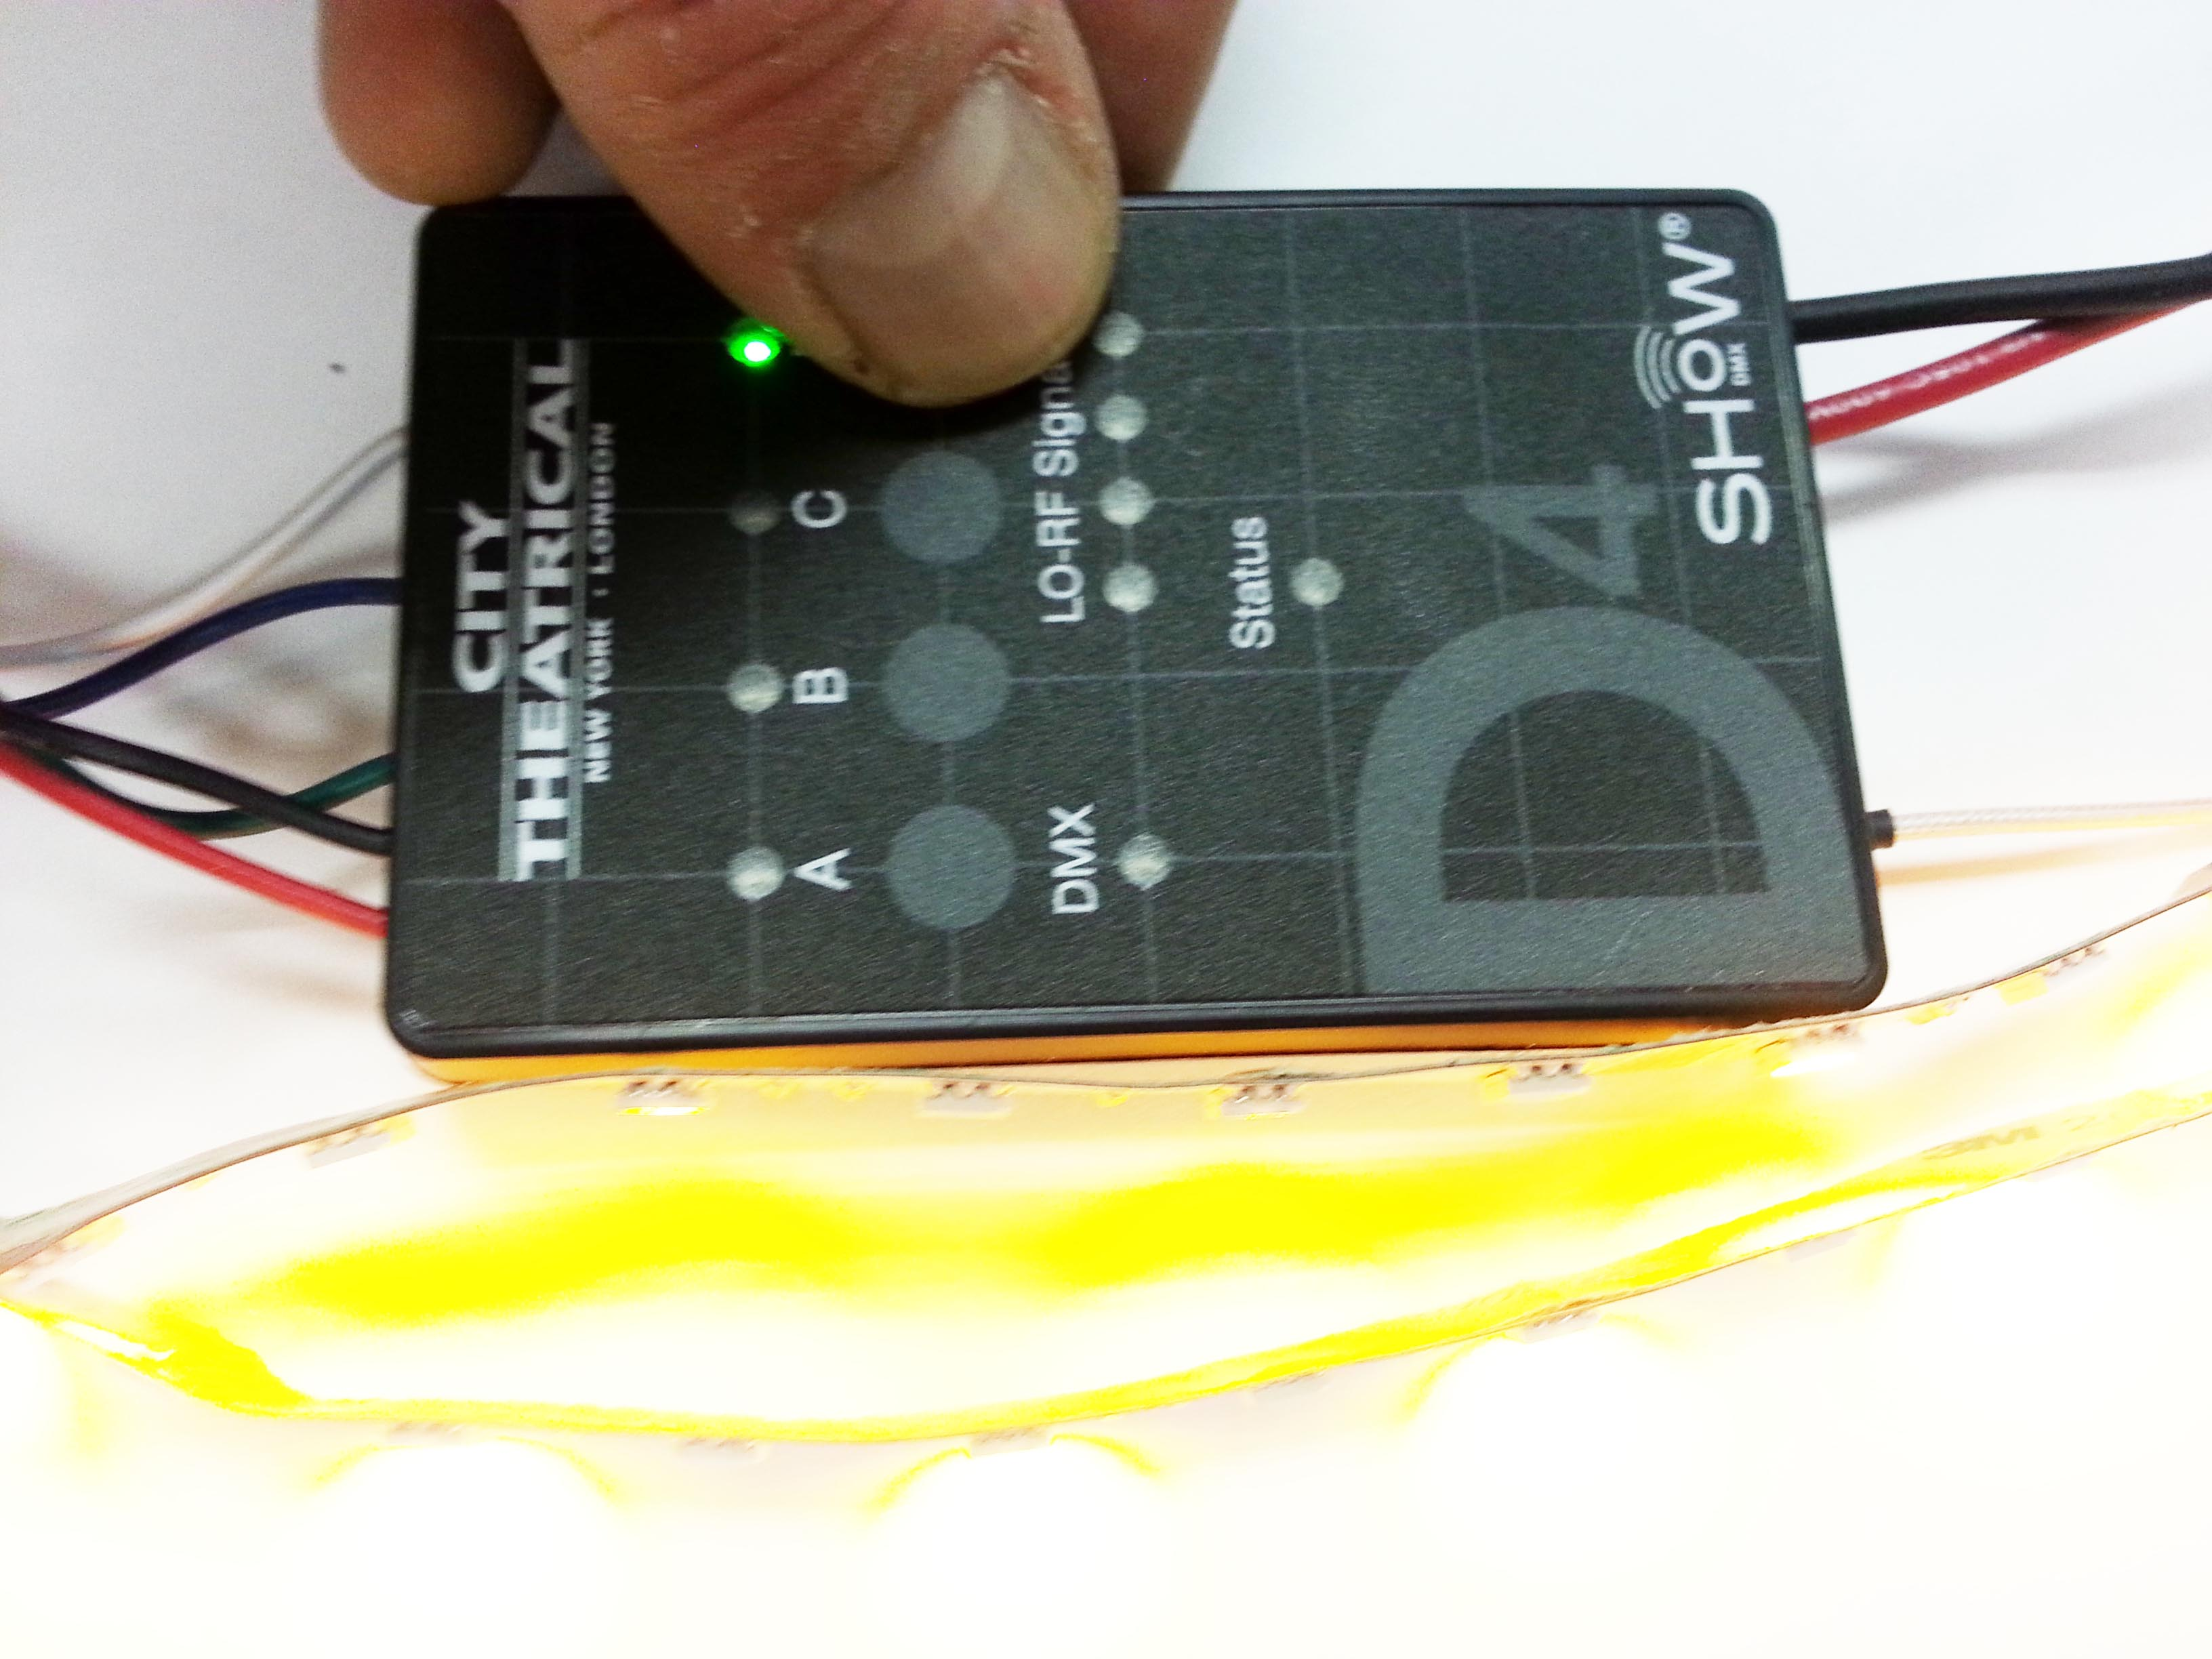 hight resolution of now we need to check our radio and dmx settings this happens on the tiny dip switches on the back they are small and it is helpful to shine a flashlight